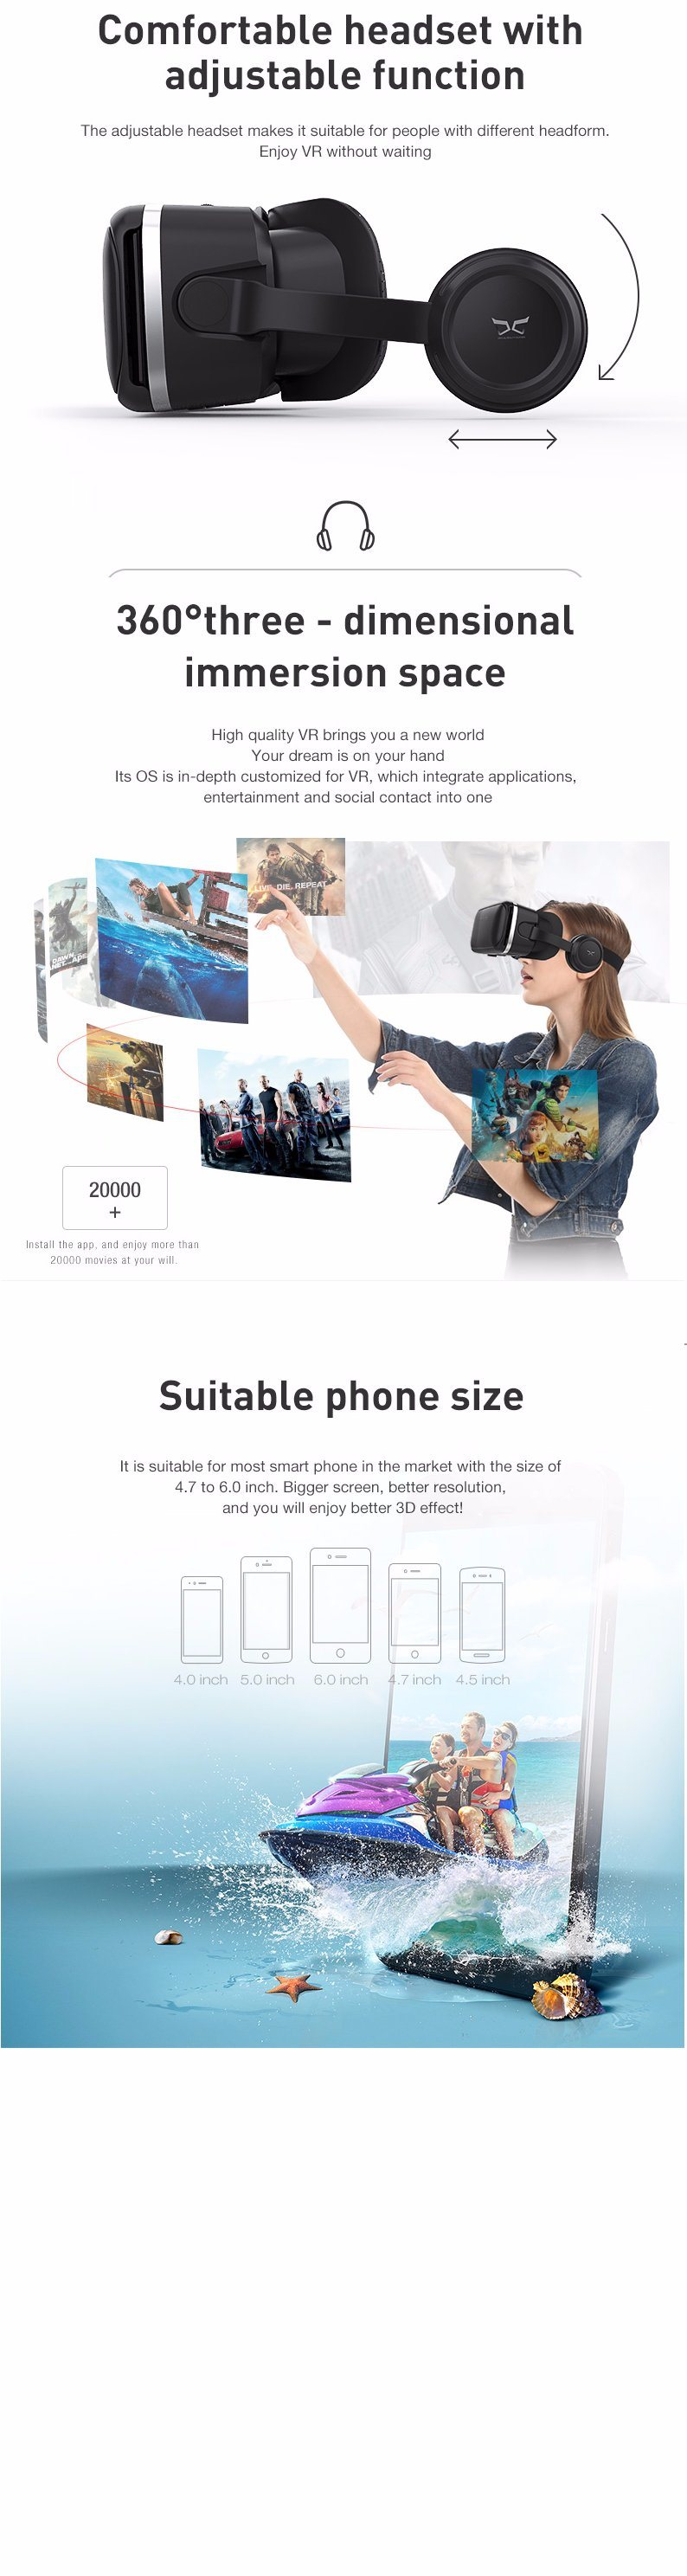 Vr Shinecon3d Vr Headset Virtual Reality Headset Of Vr Shinecon Direct Vr Goggles For 3d Movie Video Game With Adjustable Stereo Headphone Compatible With Ipho China Vr And 3d Vr Headset Virtual Reality